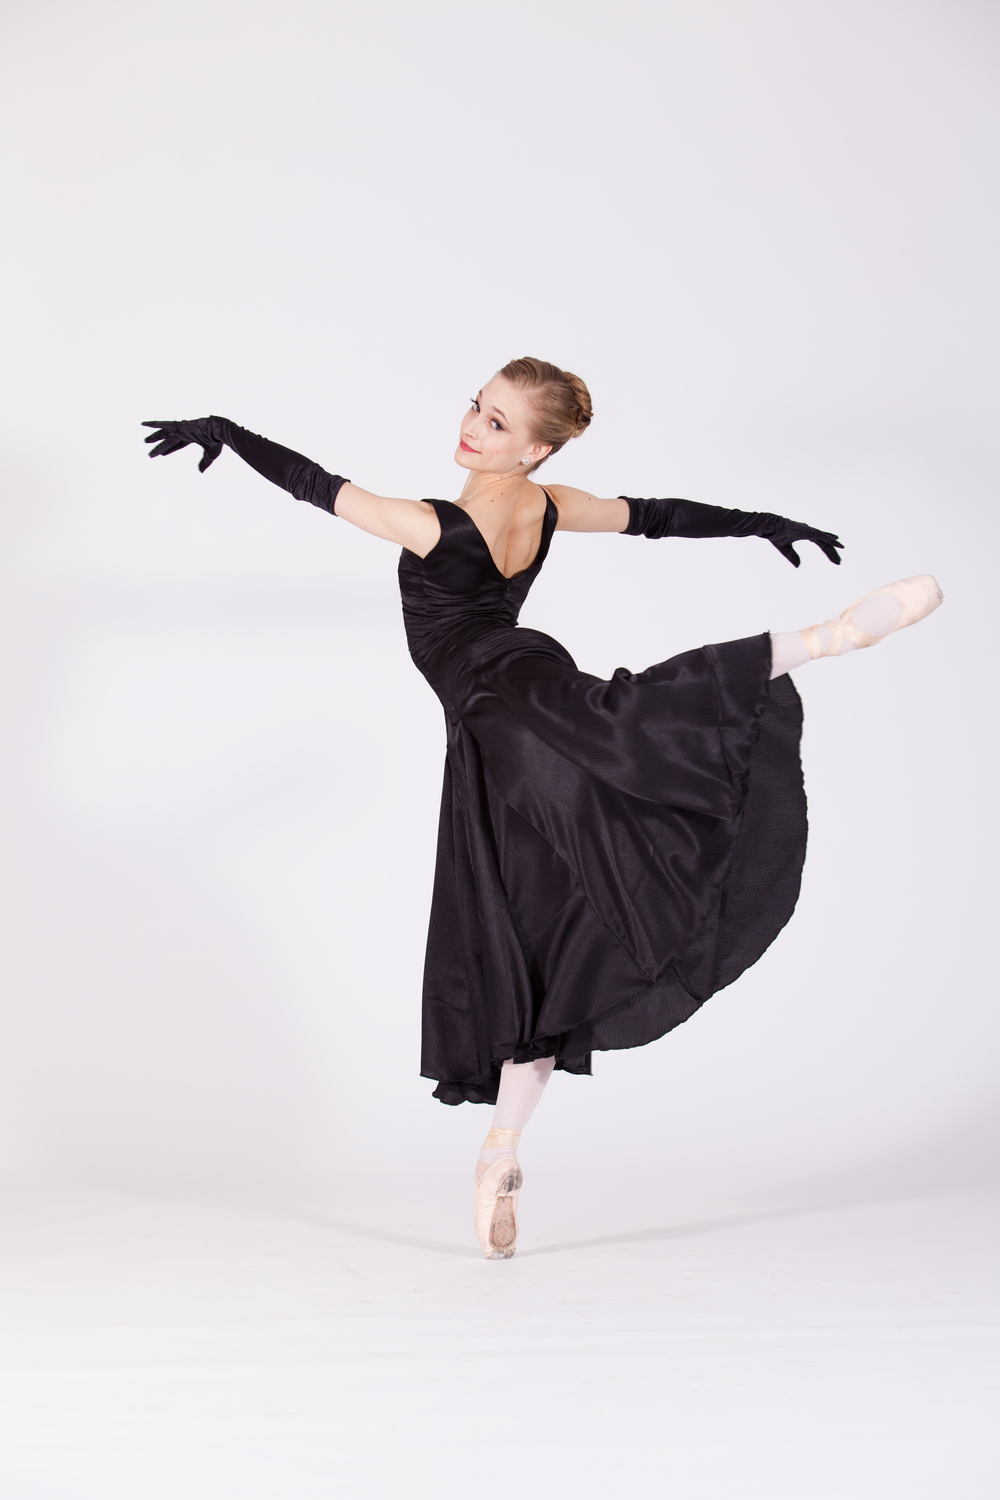 BALLET 5:8 LEAD ARTIST LAUREN ADER-CUMPSTON IN   MUSINGS